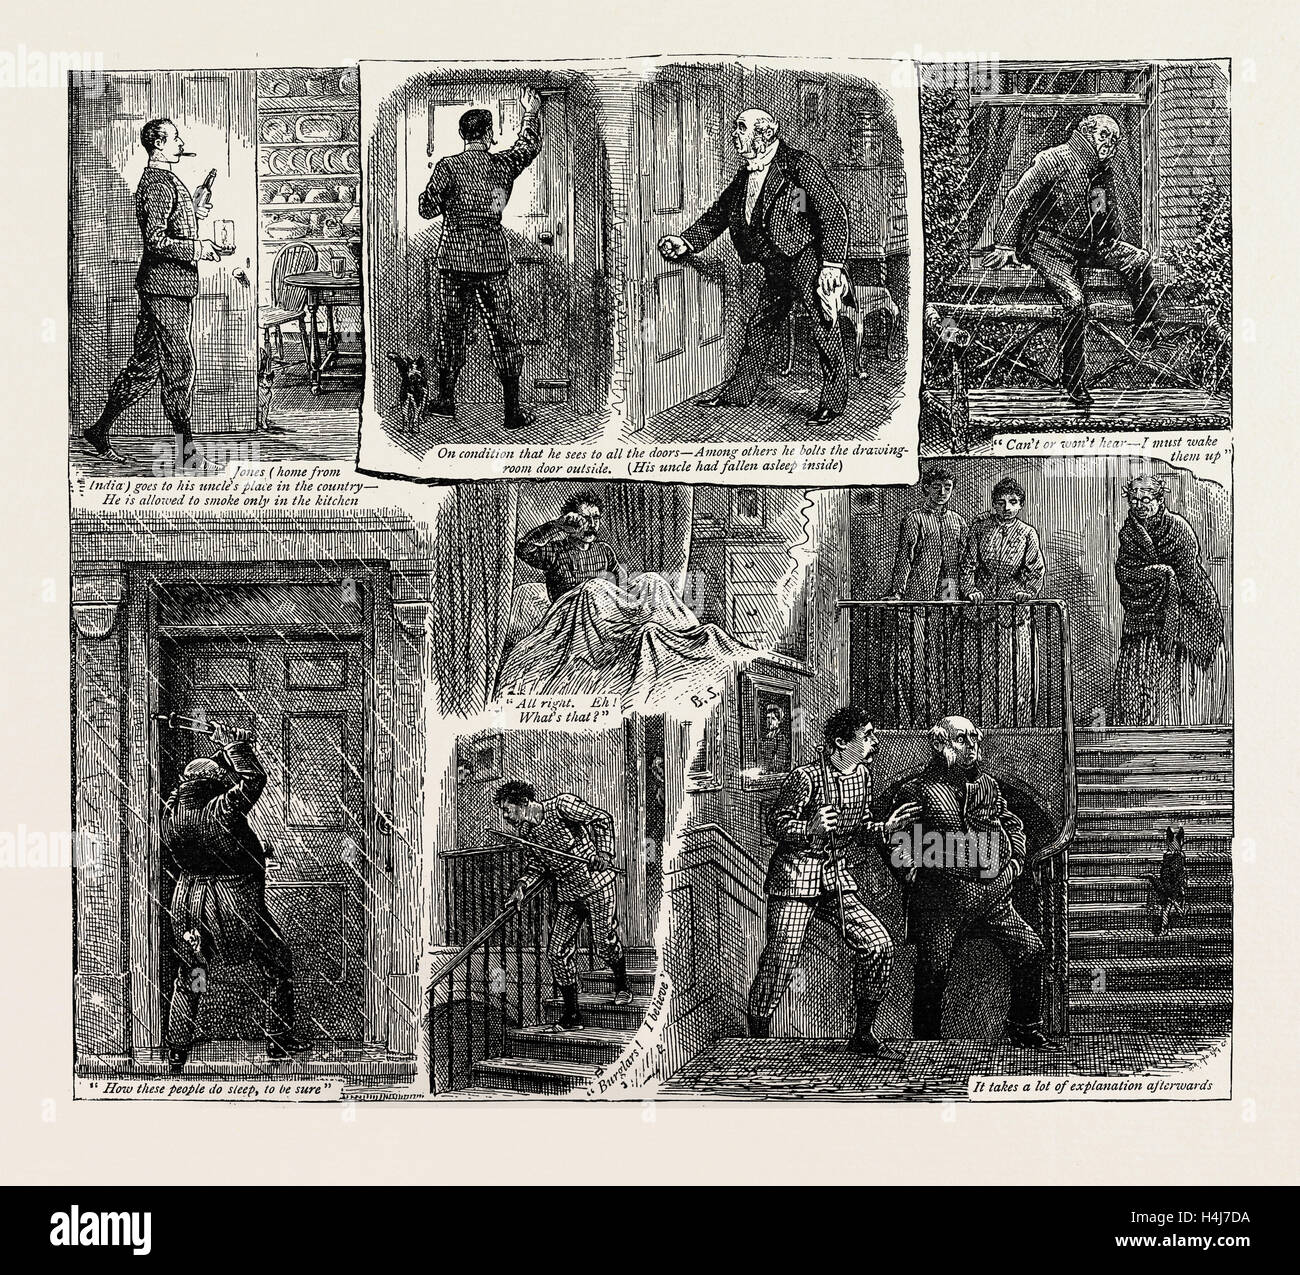 HOW JONES LOCKED OUT HIS UNCLE AND WAS CUT OFF WITH A SHILLING, 1889 - Stock Image